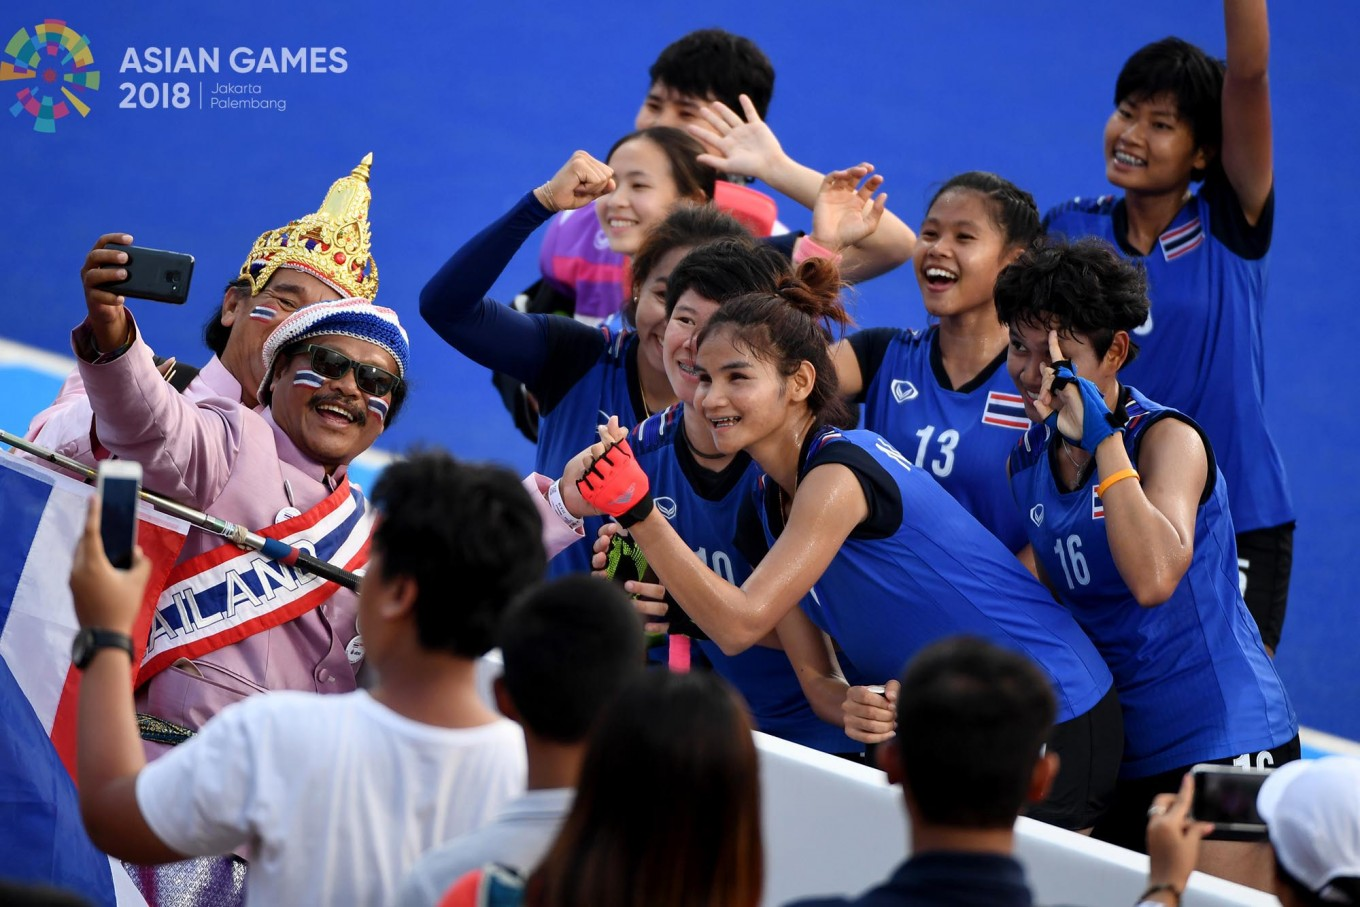 Thailand women's hockey players take a photo with their supporters after a game against Indonesia at the Asian Games at the GBK Hockey Field in Senayan, Central Jakarta, on Saturday, August. 25. Thailand won 2-0. Inasgoc via Antara/ Dhoni Setiawan